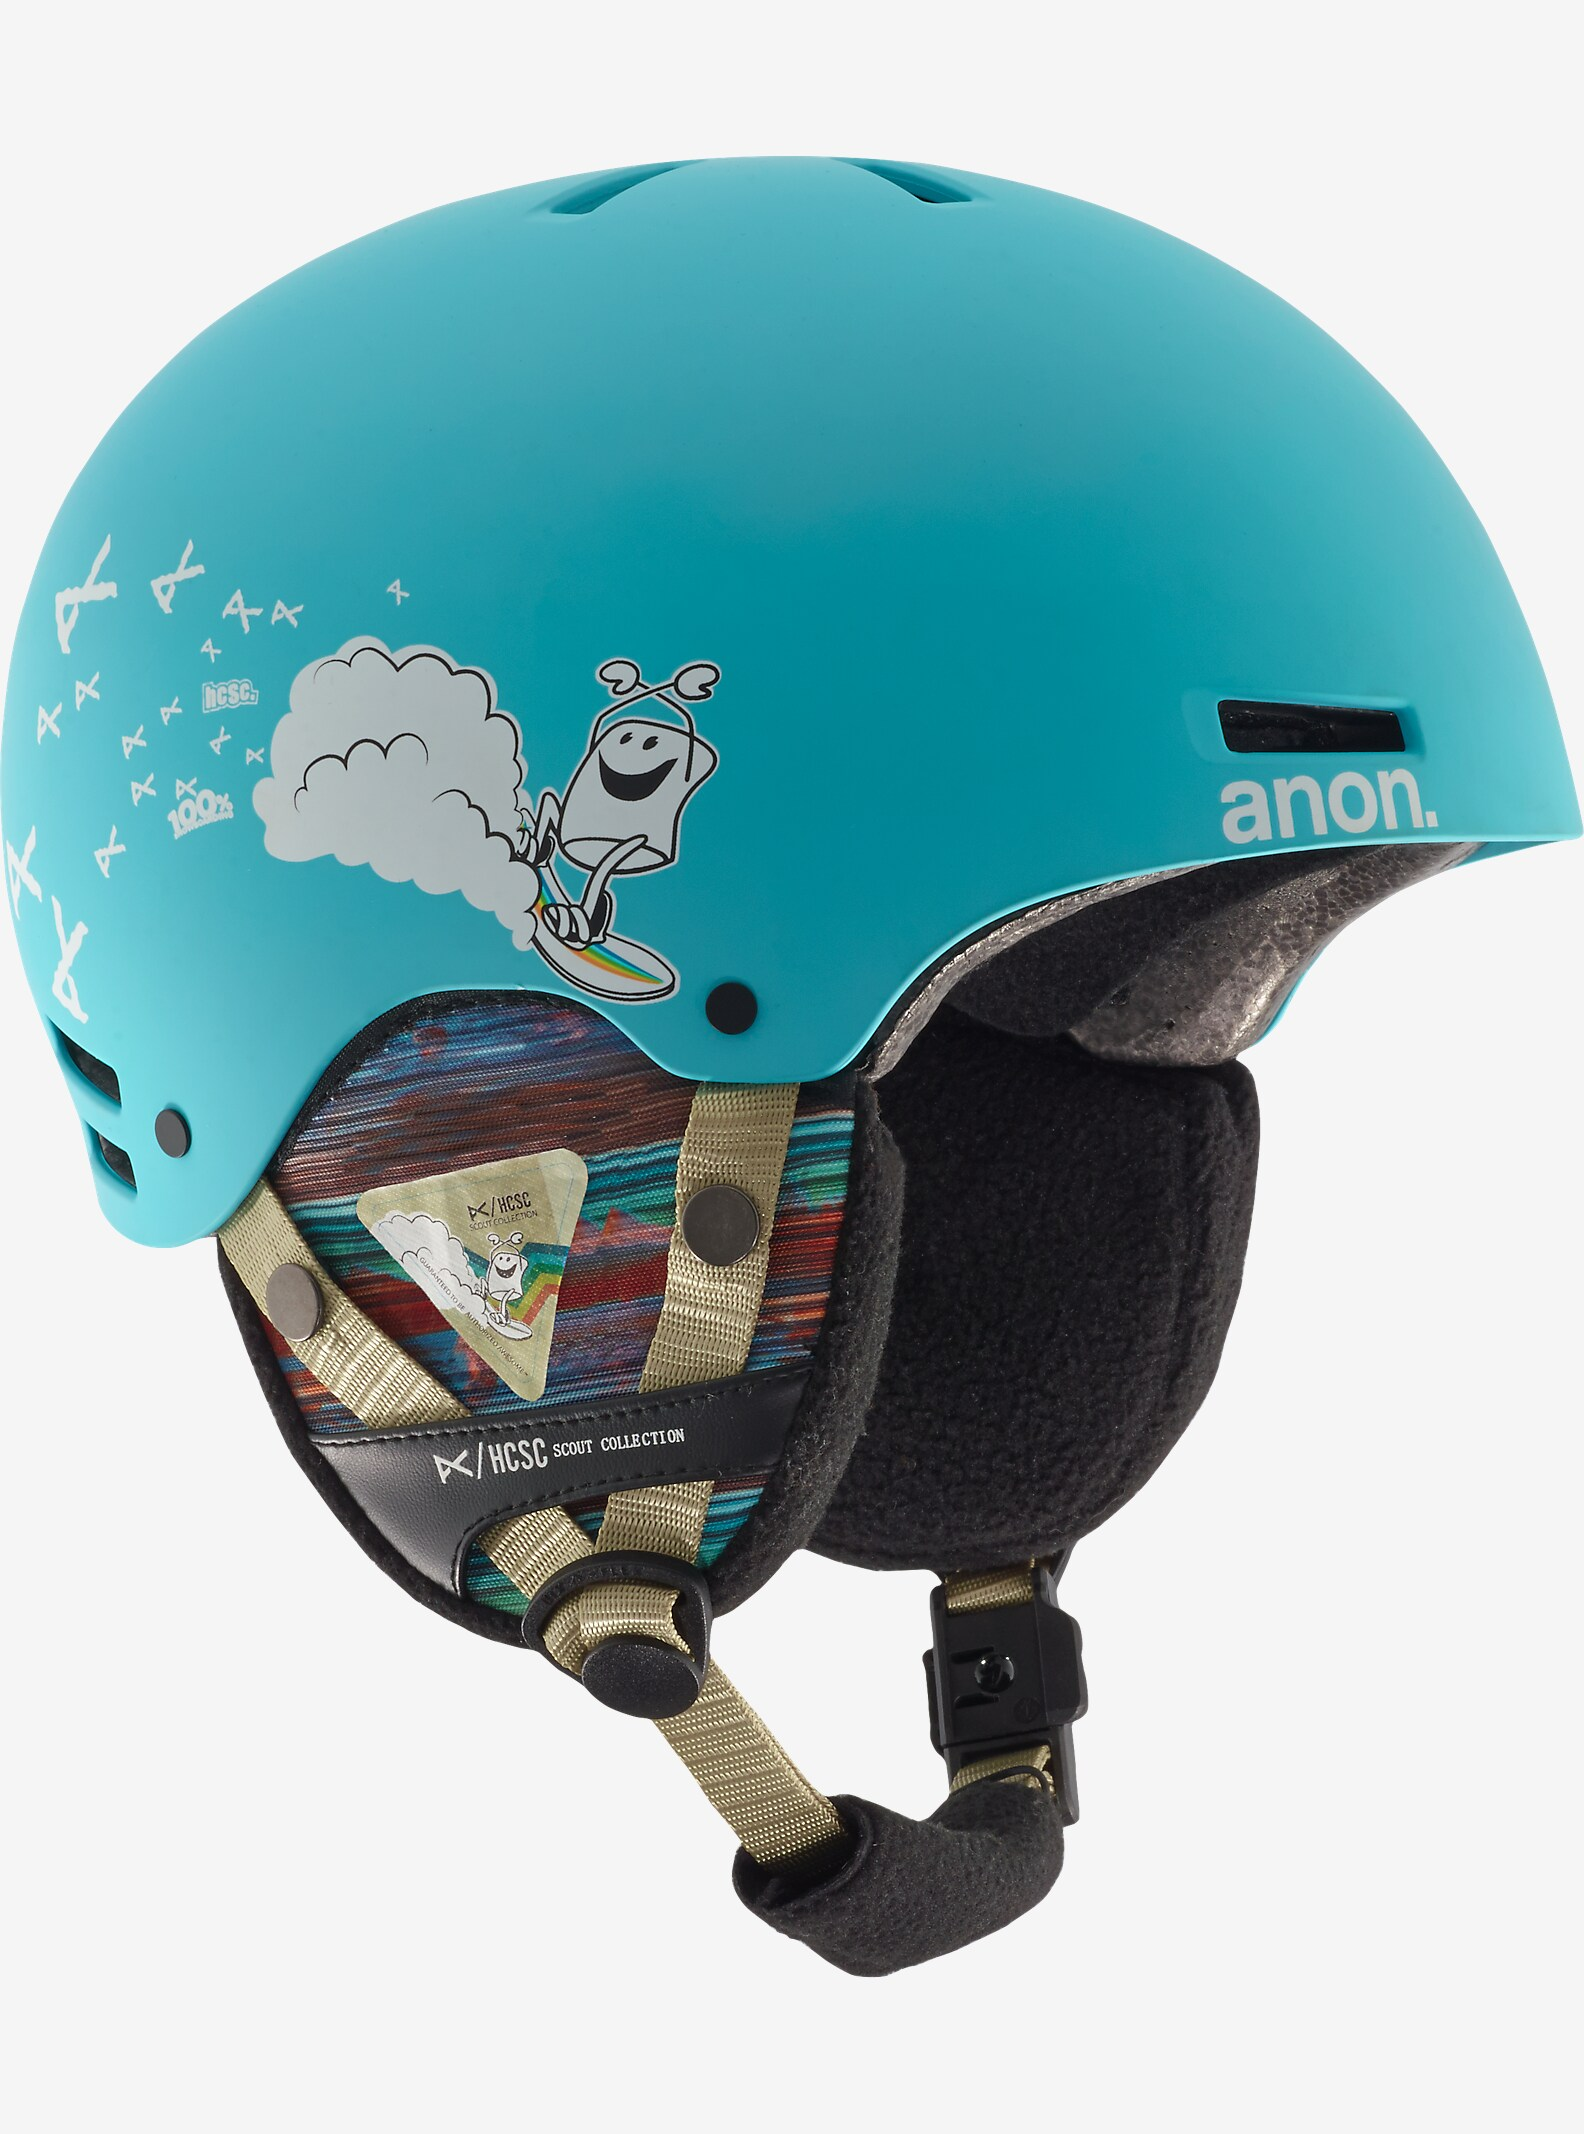 HCSC x anon. Boys' Rime Helmet shown in HCSC